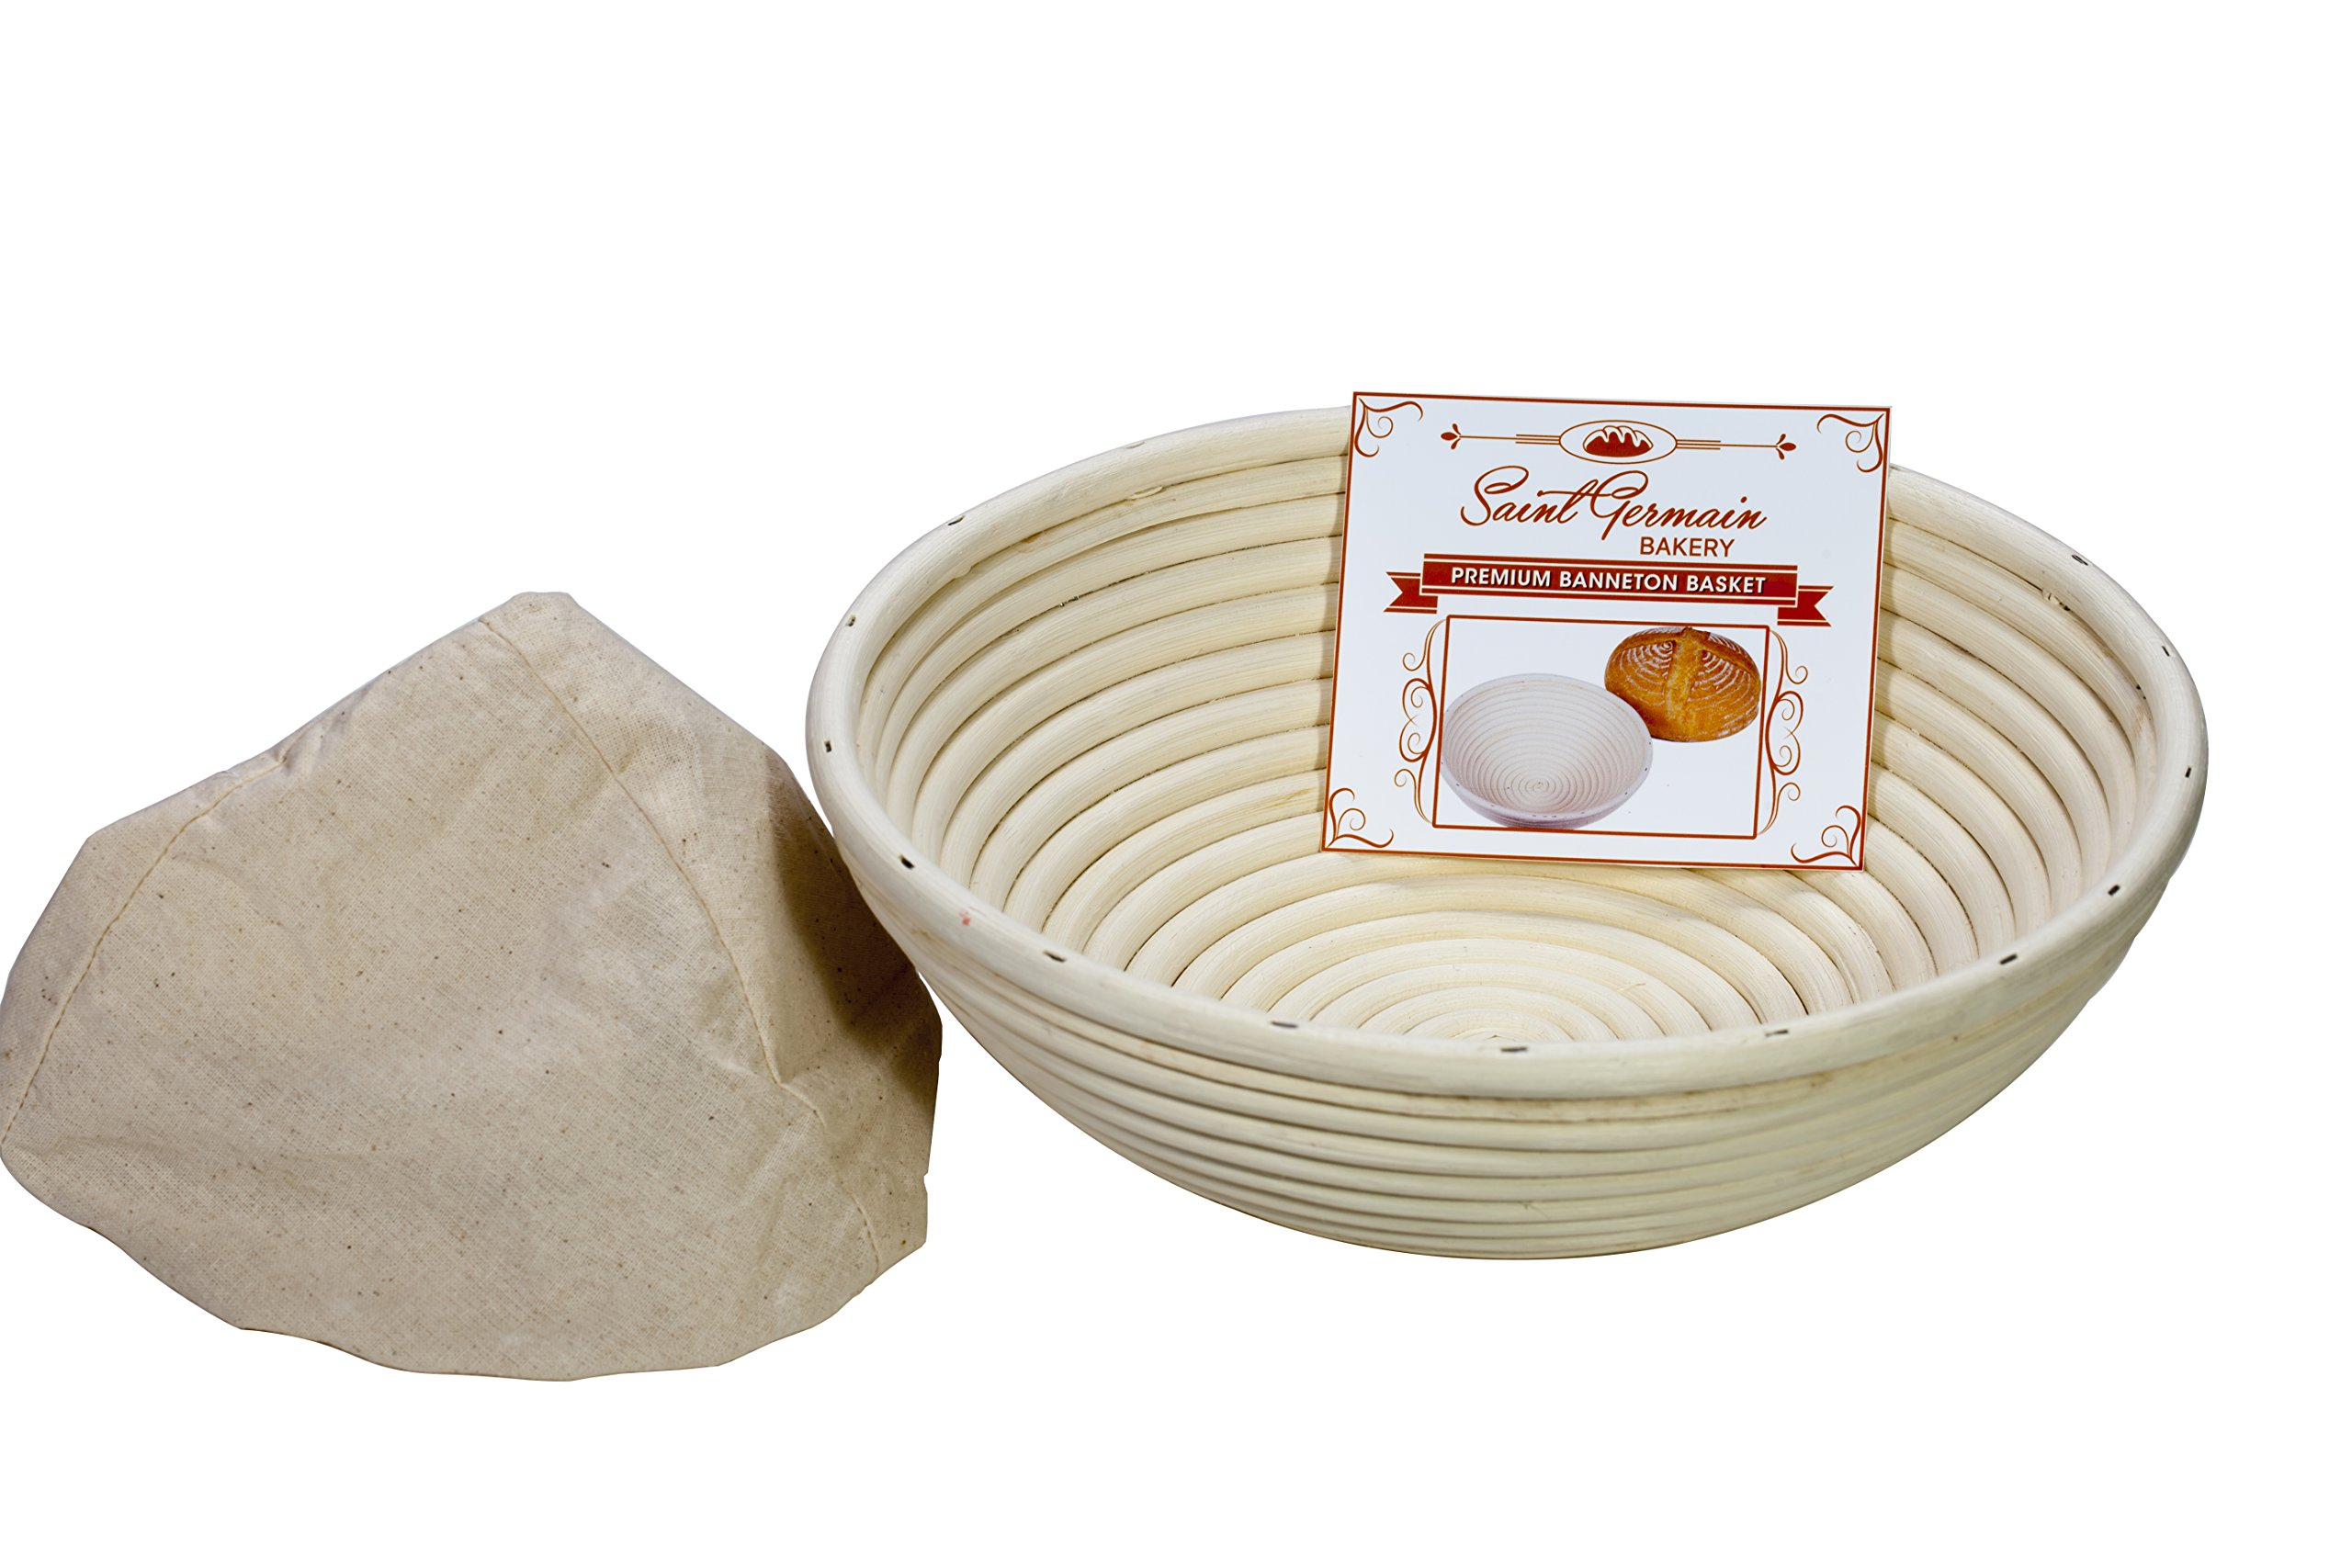 (10 x 4 Inch) Premium Round Banneton Basket with Liner - Perfect Brotform Proofing Basket for Making Beautiful Bread